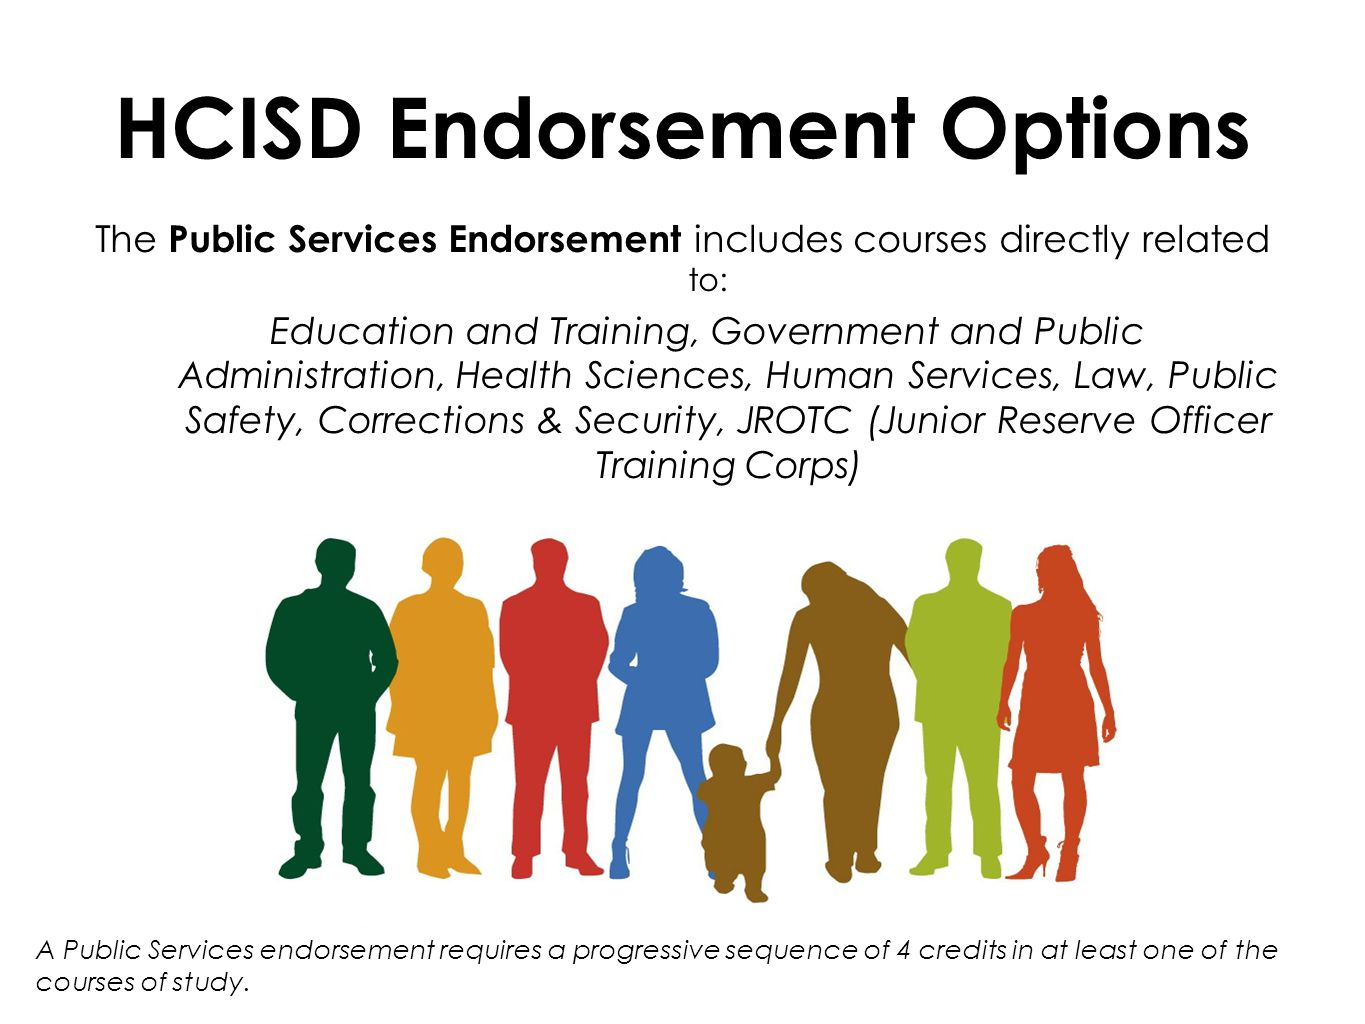 HCISD Endorsement Options The Public Services Endorsement includes courses directly related to: Education and Training, Government and Public Administration, Health Sciences, Human Services, Law, Public Safety, Corrections & Security, JROTC (Junior Reserve Officer Training Corps) A Public Services endorsement requires a progressive sequence of 4 credits in at least one of the courses of study.